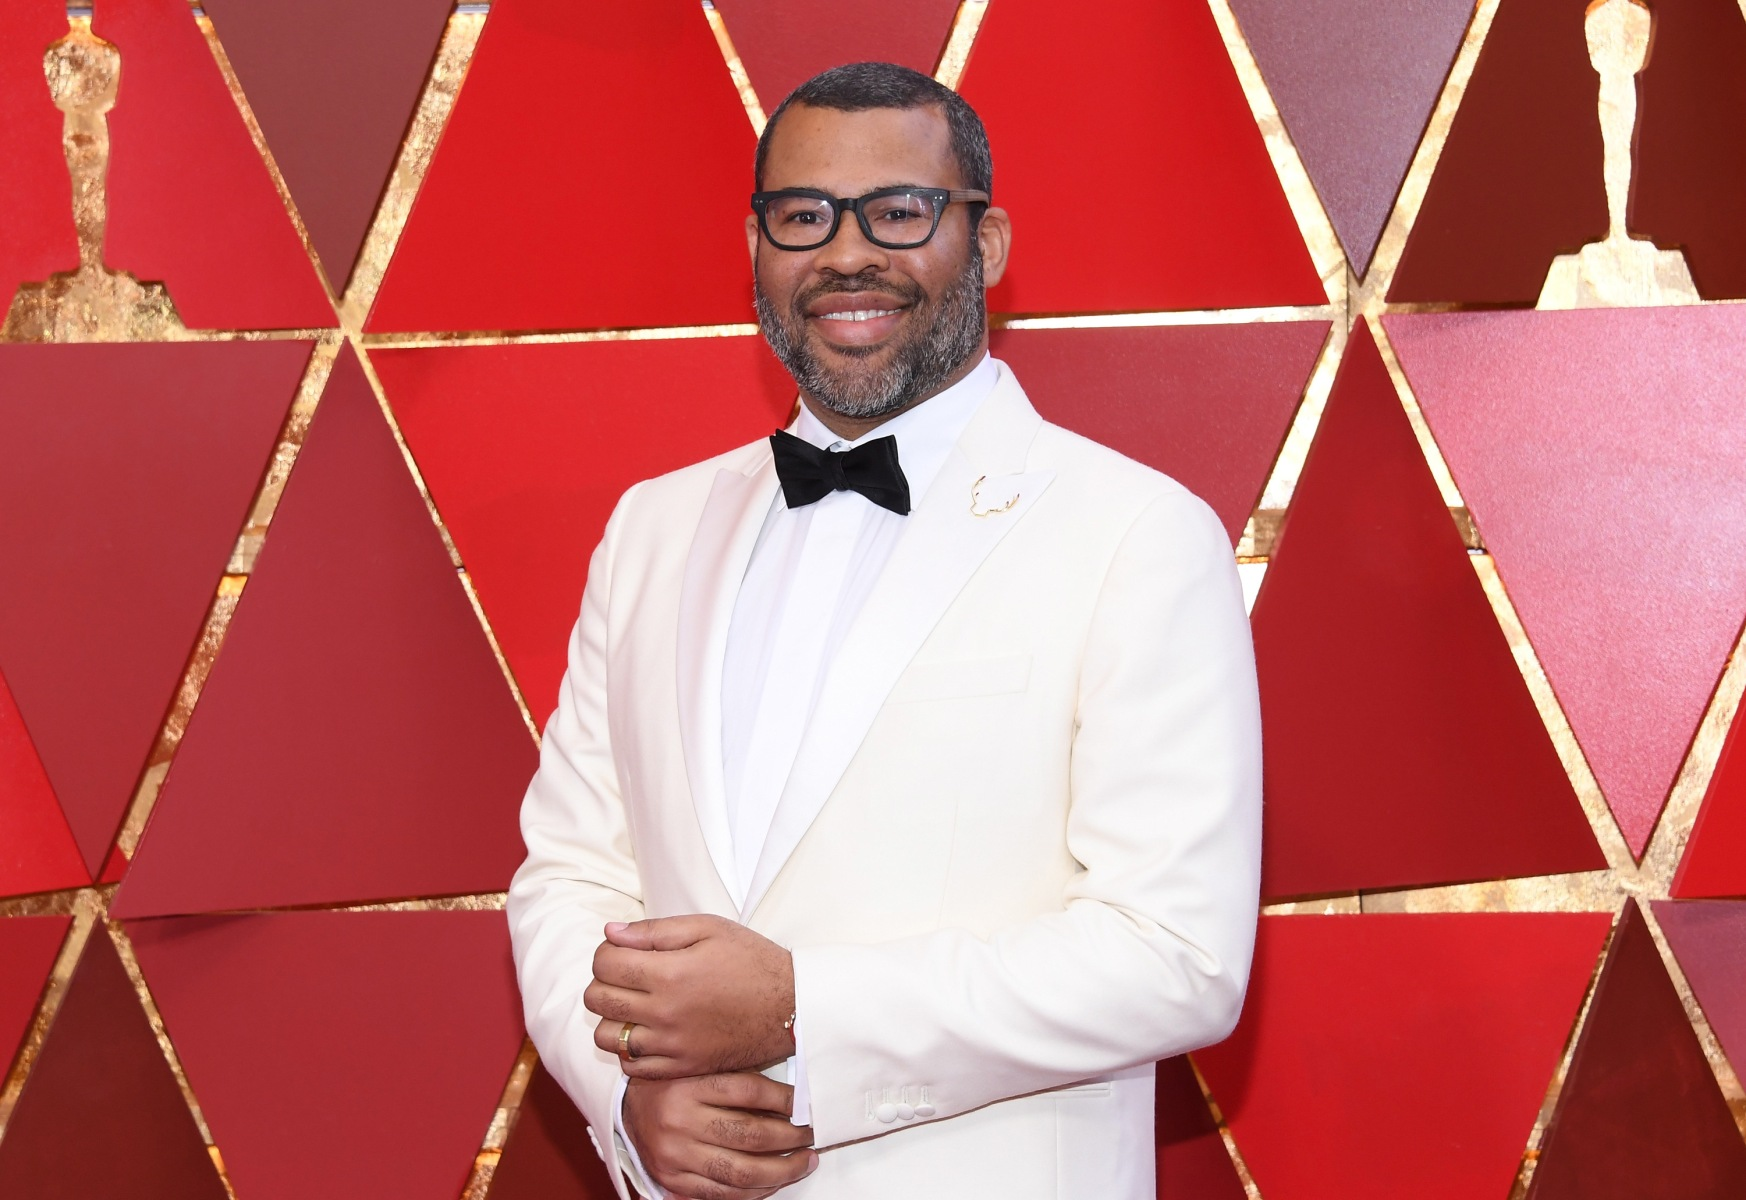 Jordan Peele attends the 90th Annual Academy Awards on March 4, 2018 in Hollywood, California. Peele will host a new version of 'The Twilight Zone.' (Photo by Kevork Djansezian/Getty Images)